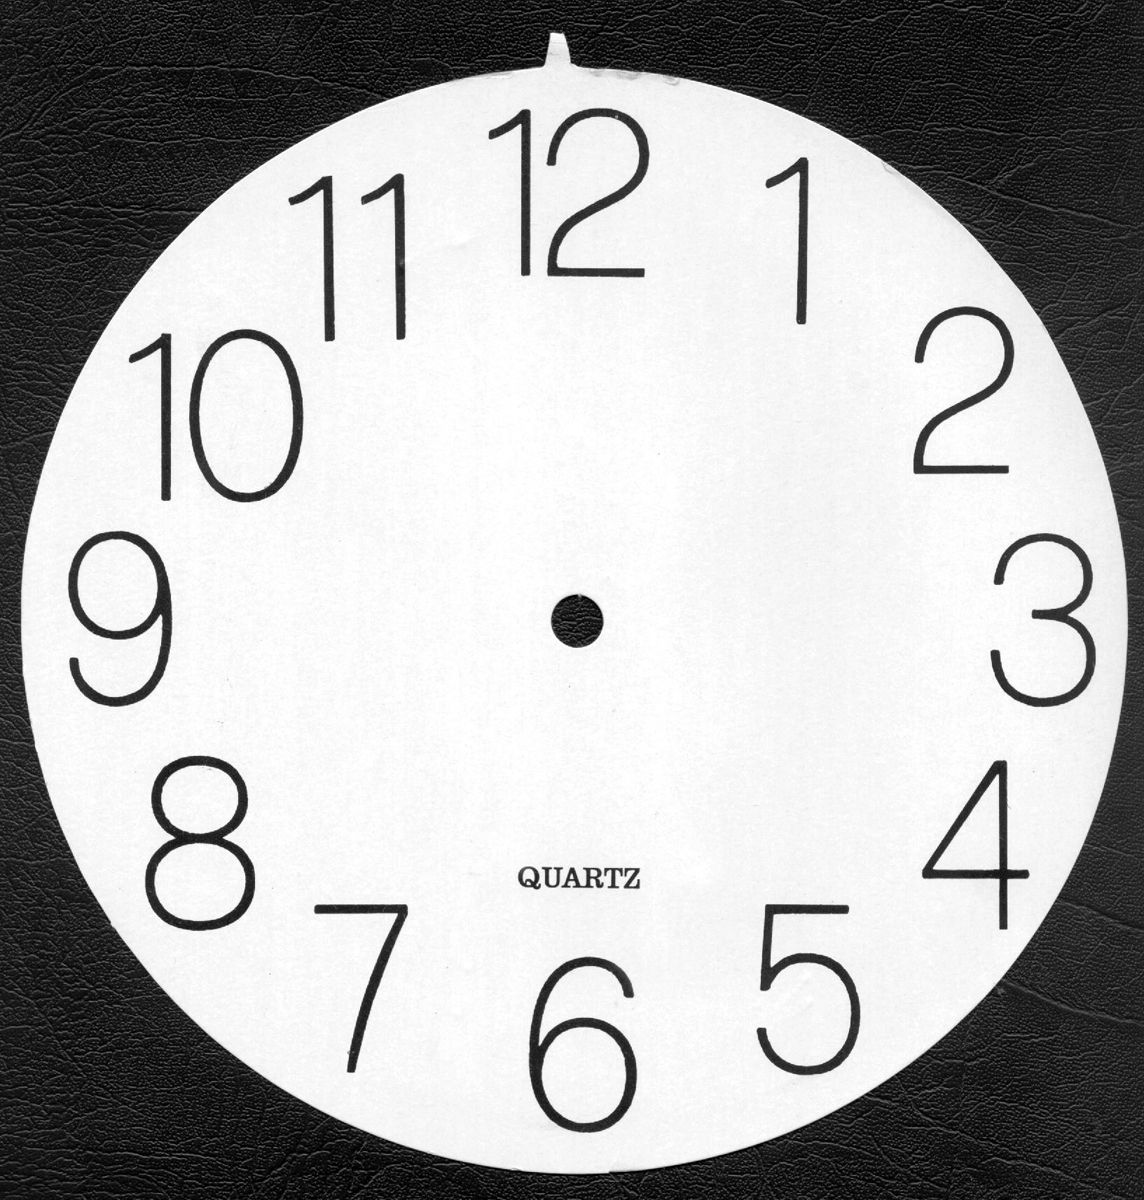 Worksheet Clock Face Interactive clock face interactive scalien mikyu free worksheet